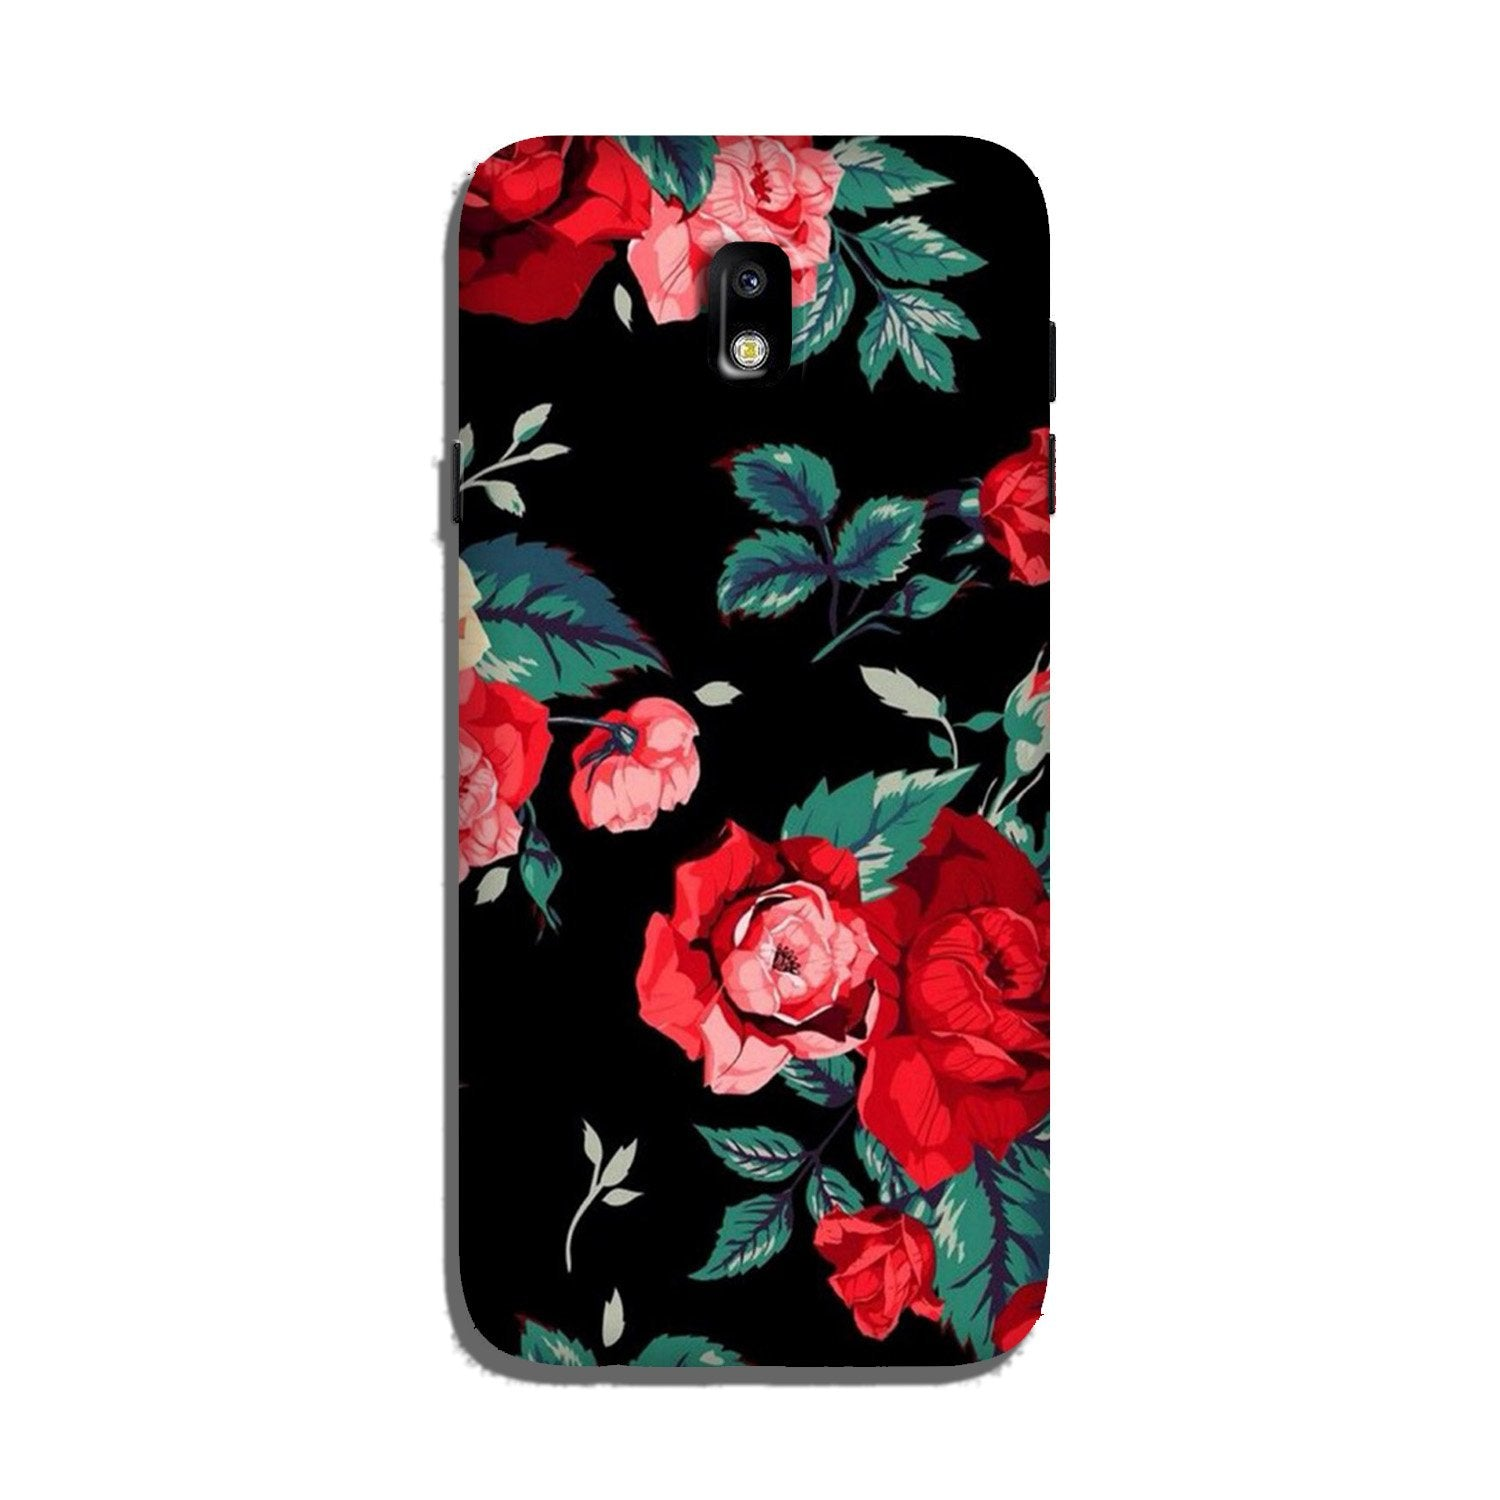 Red Rose2 Case for Galaxy J7 Pro